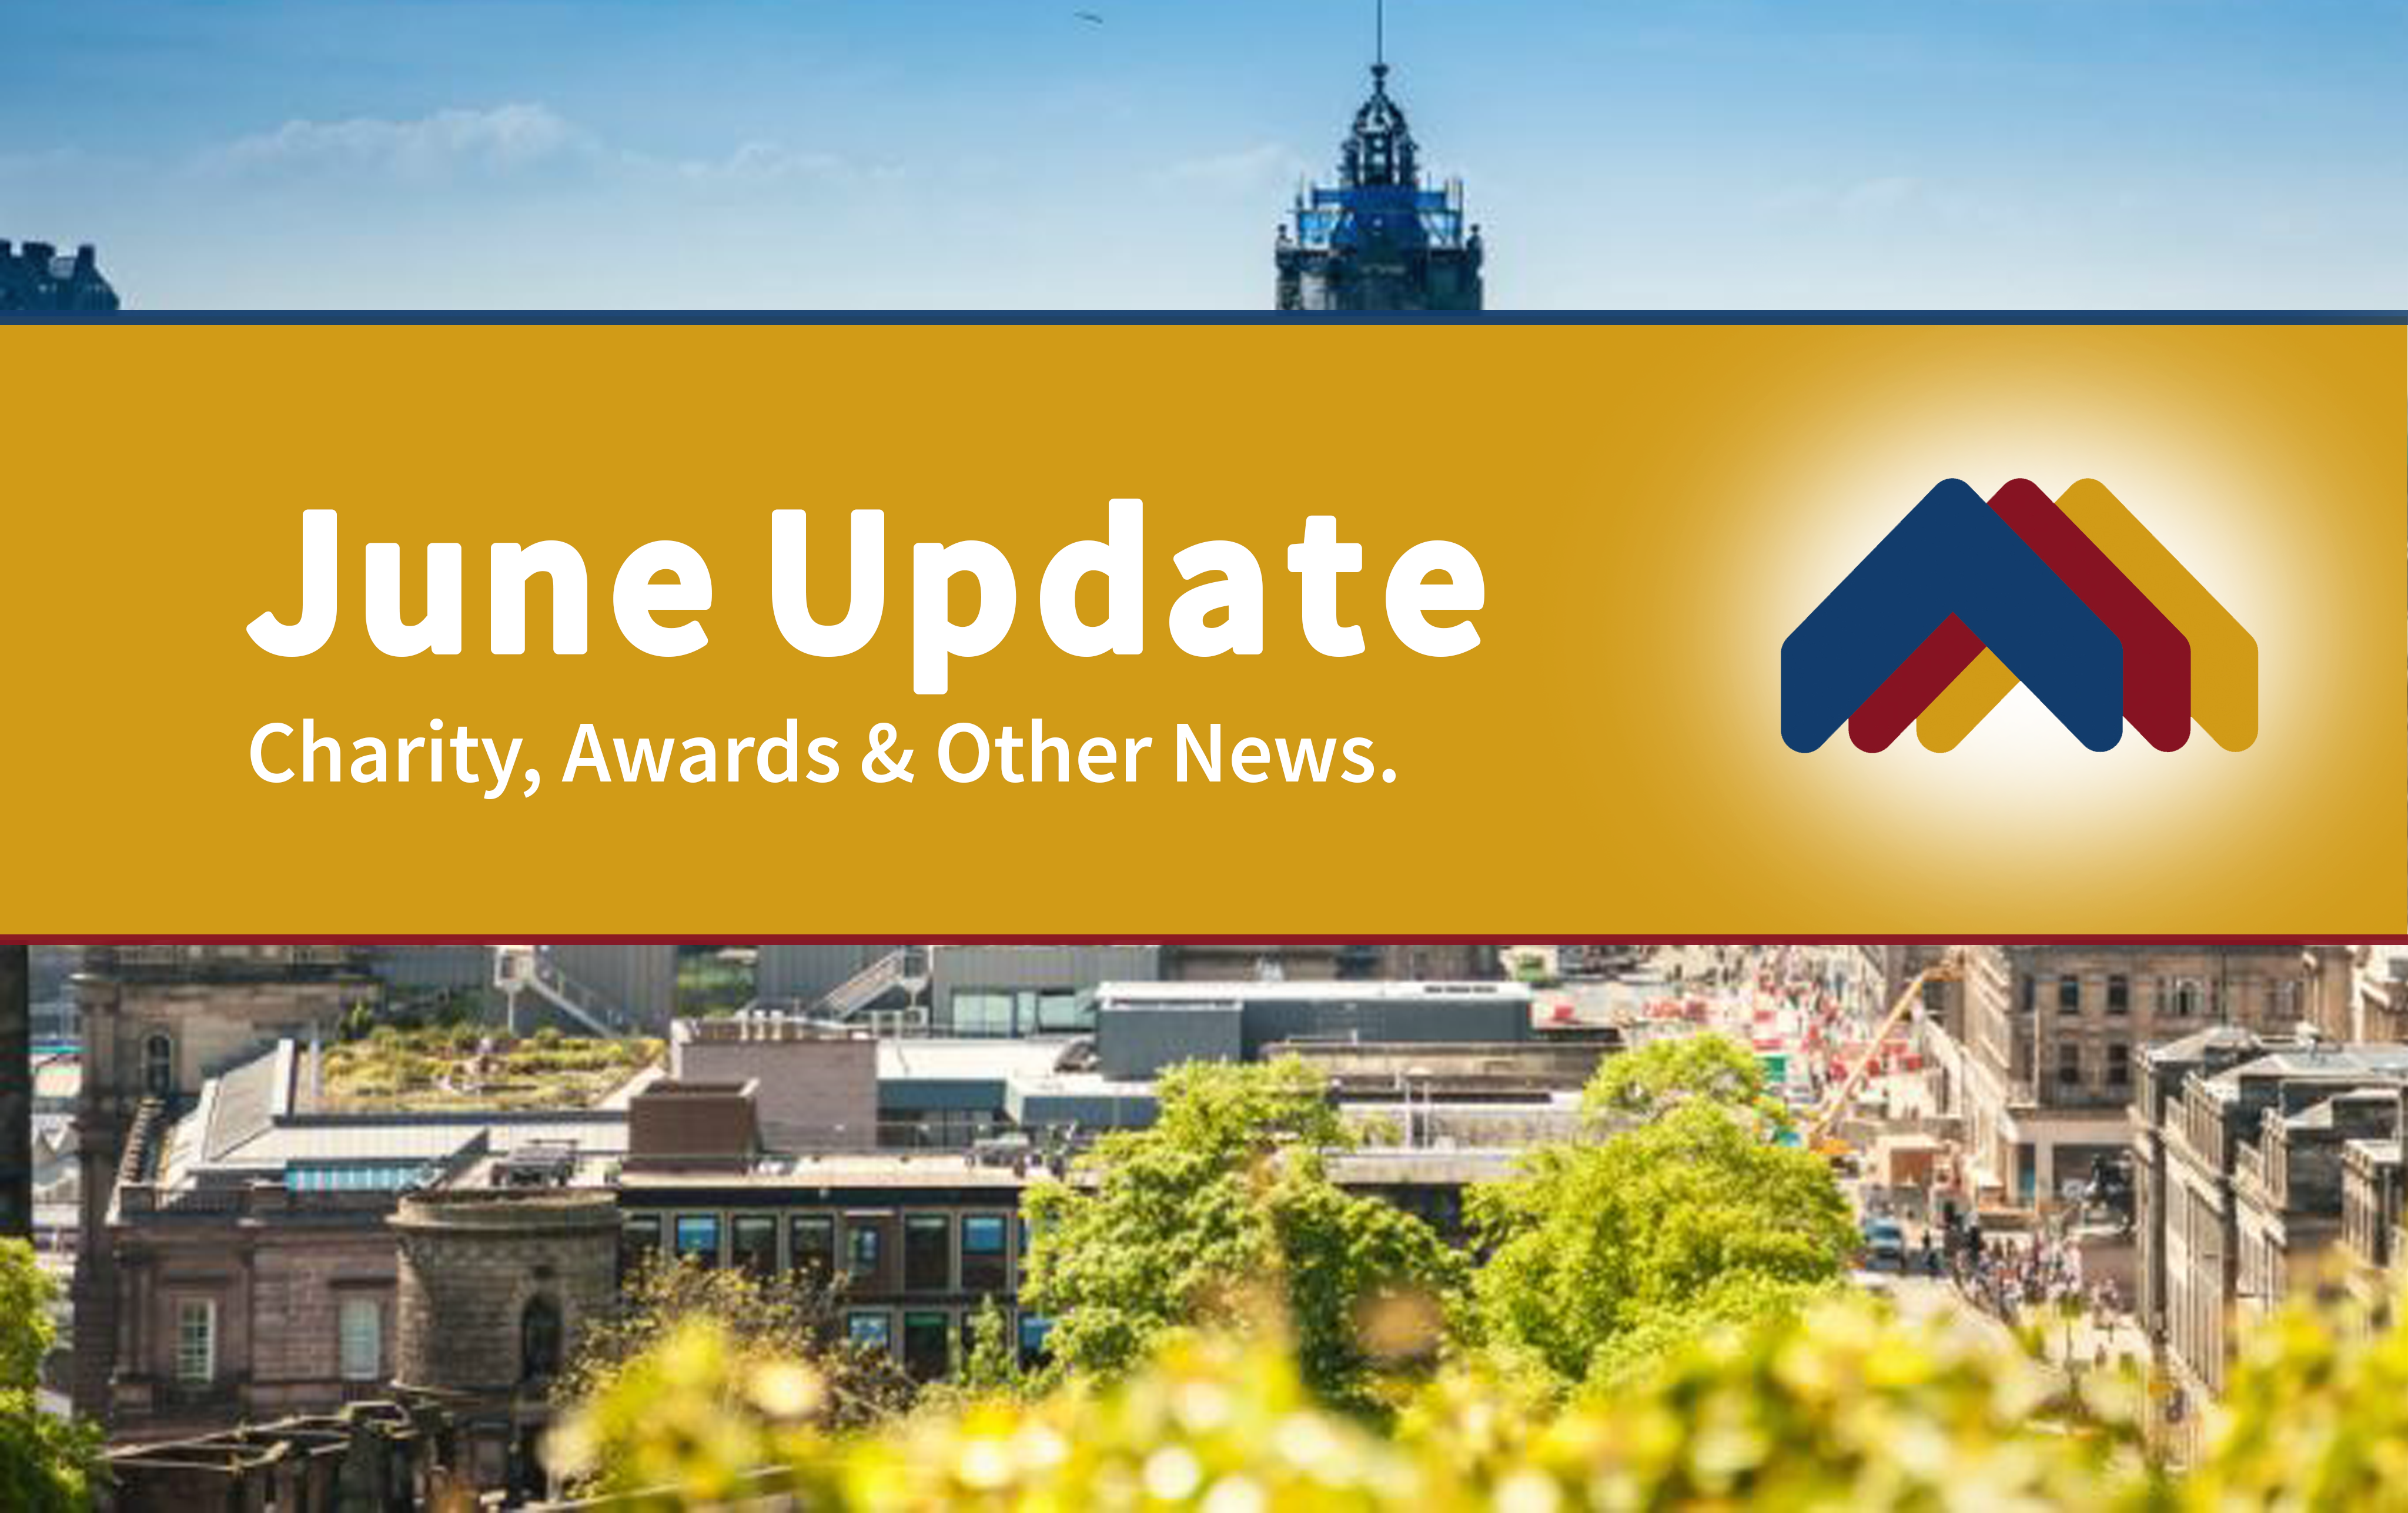 June Update From Cullen Property | Charity, Awards & Other News